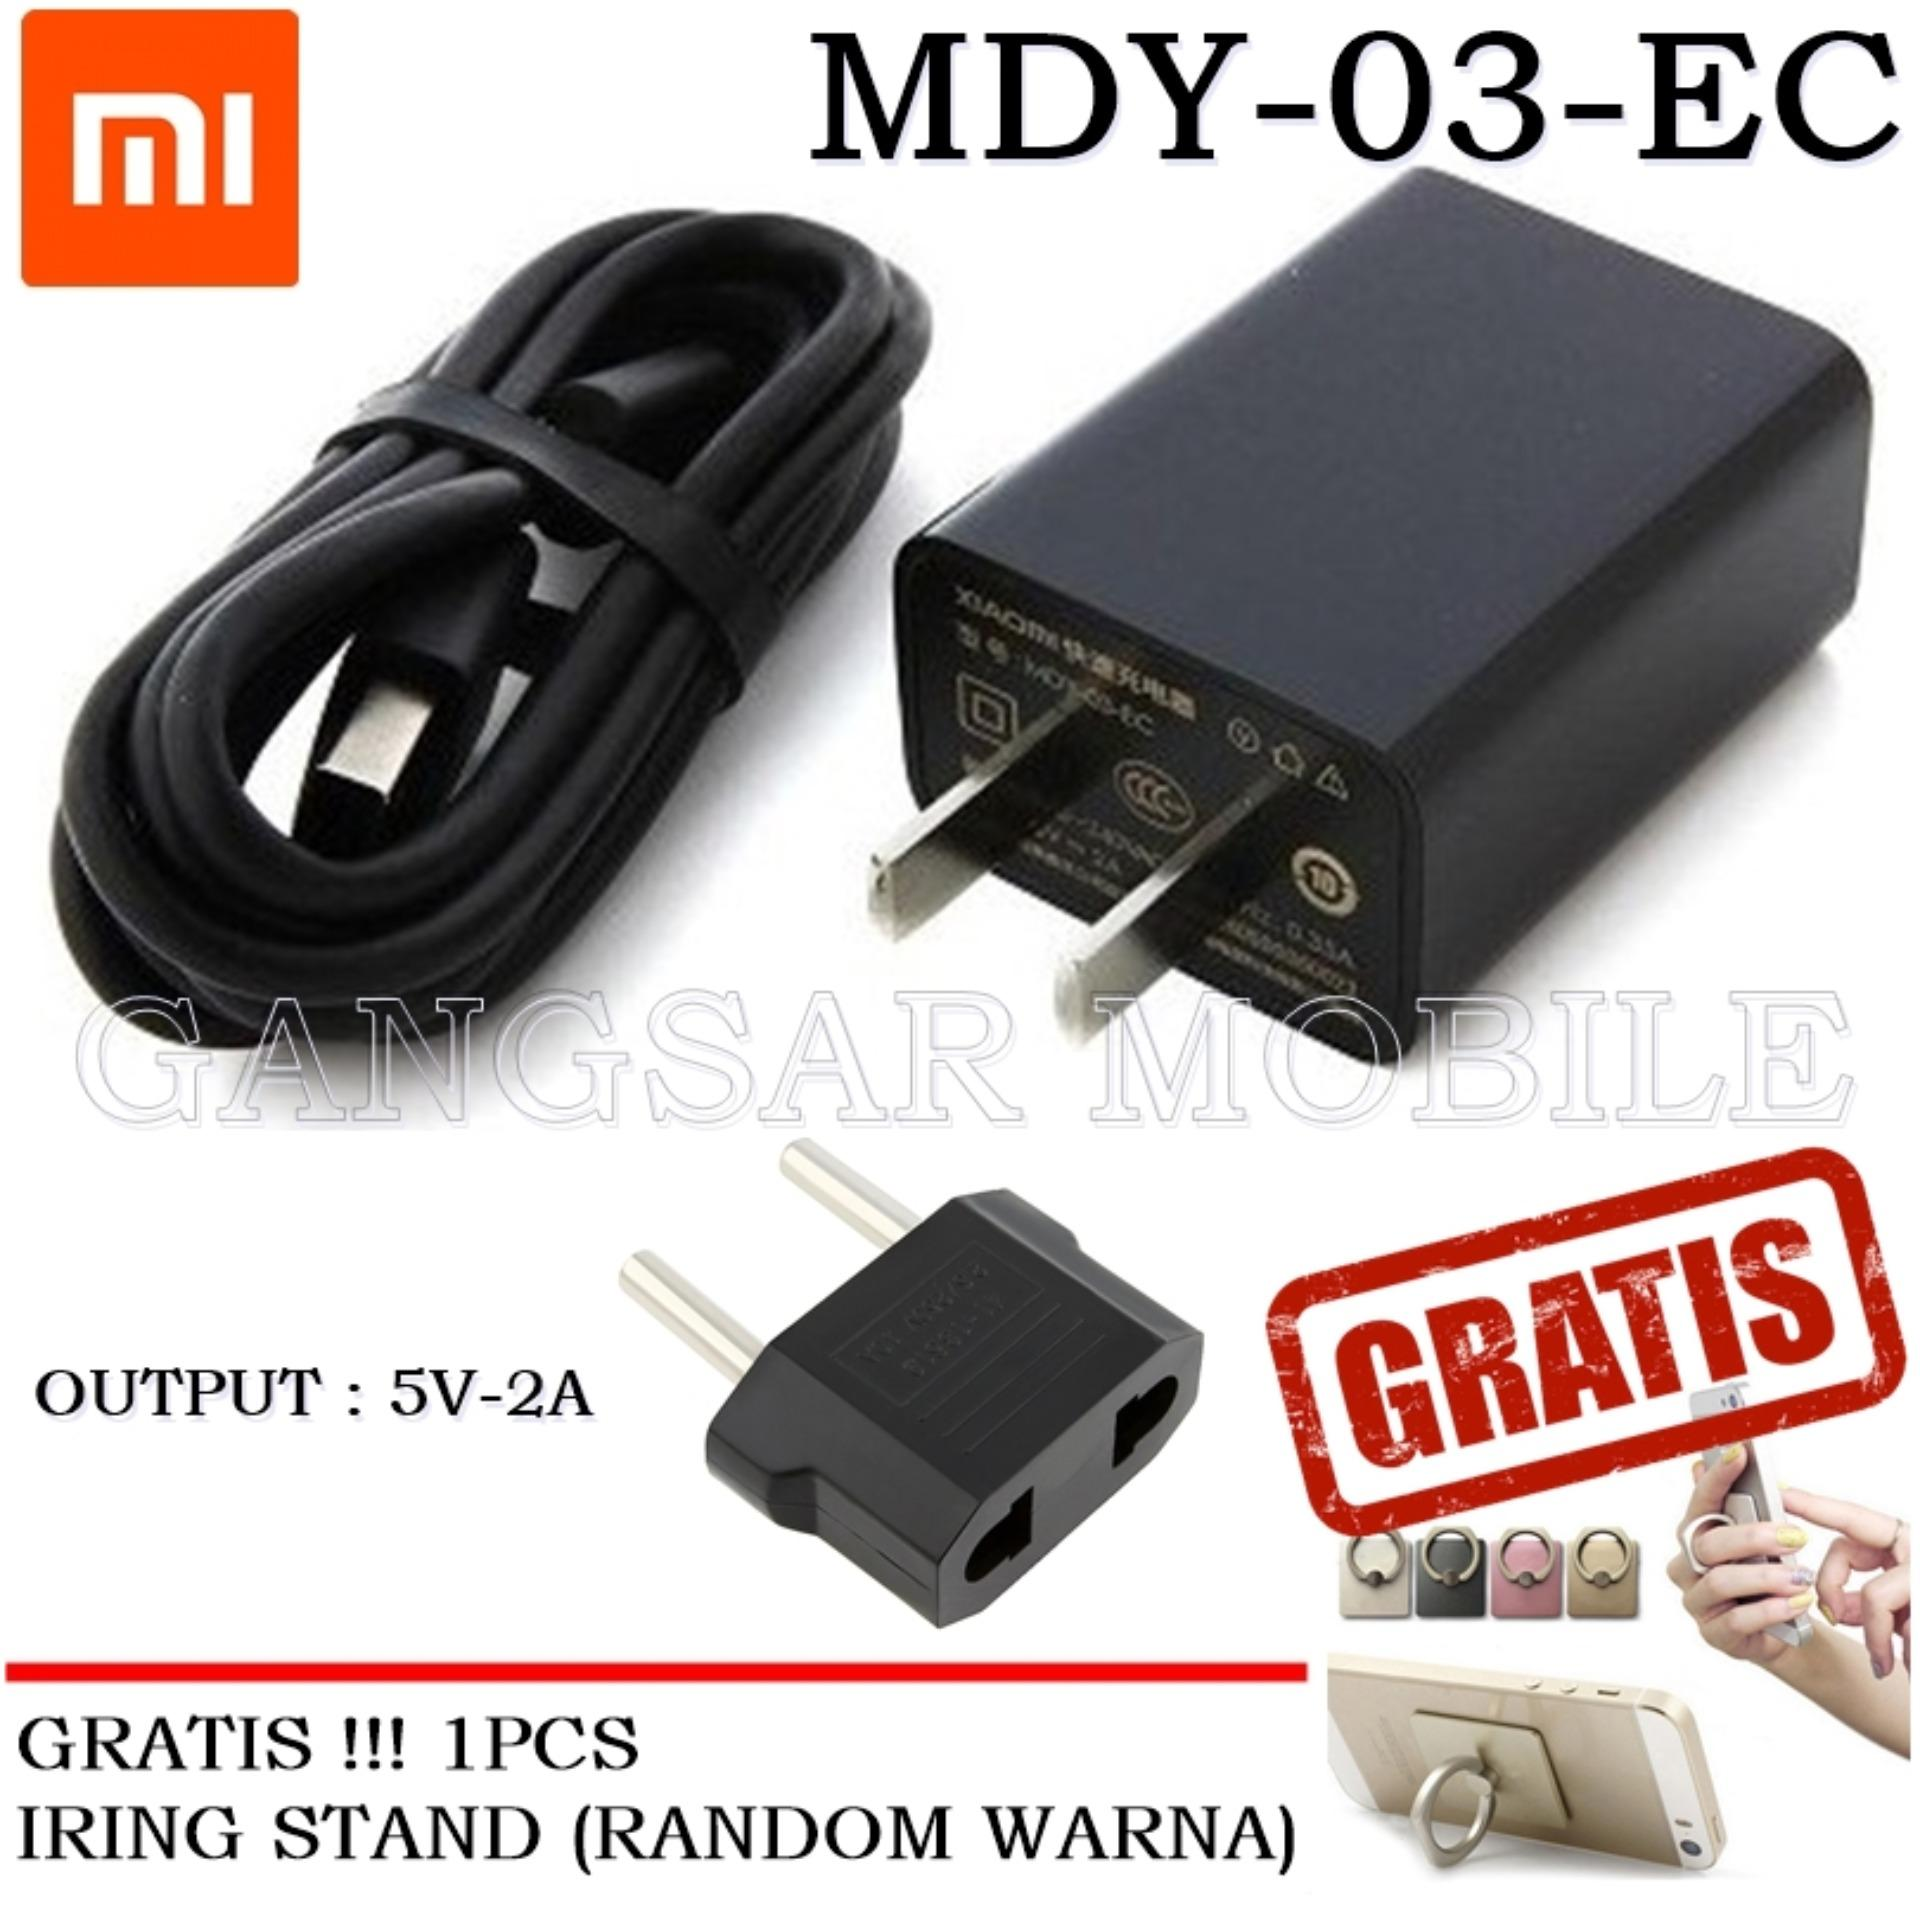 Xiaomi Travel Charger 5V-2A Micro USB Include Adapter ORIGINAL 100% + GRATIS!!! Ringstand HP